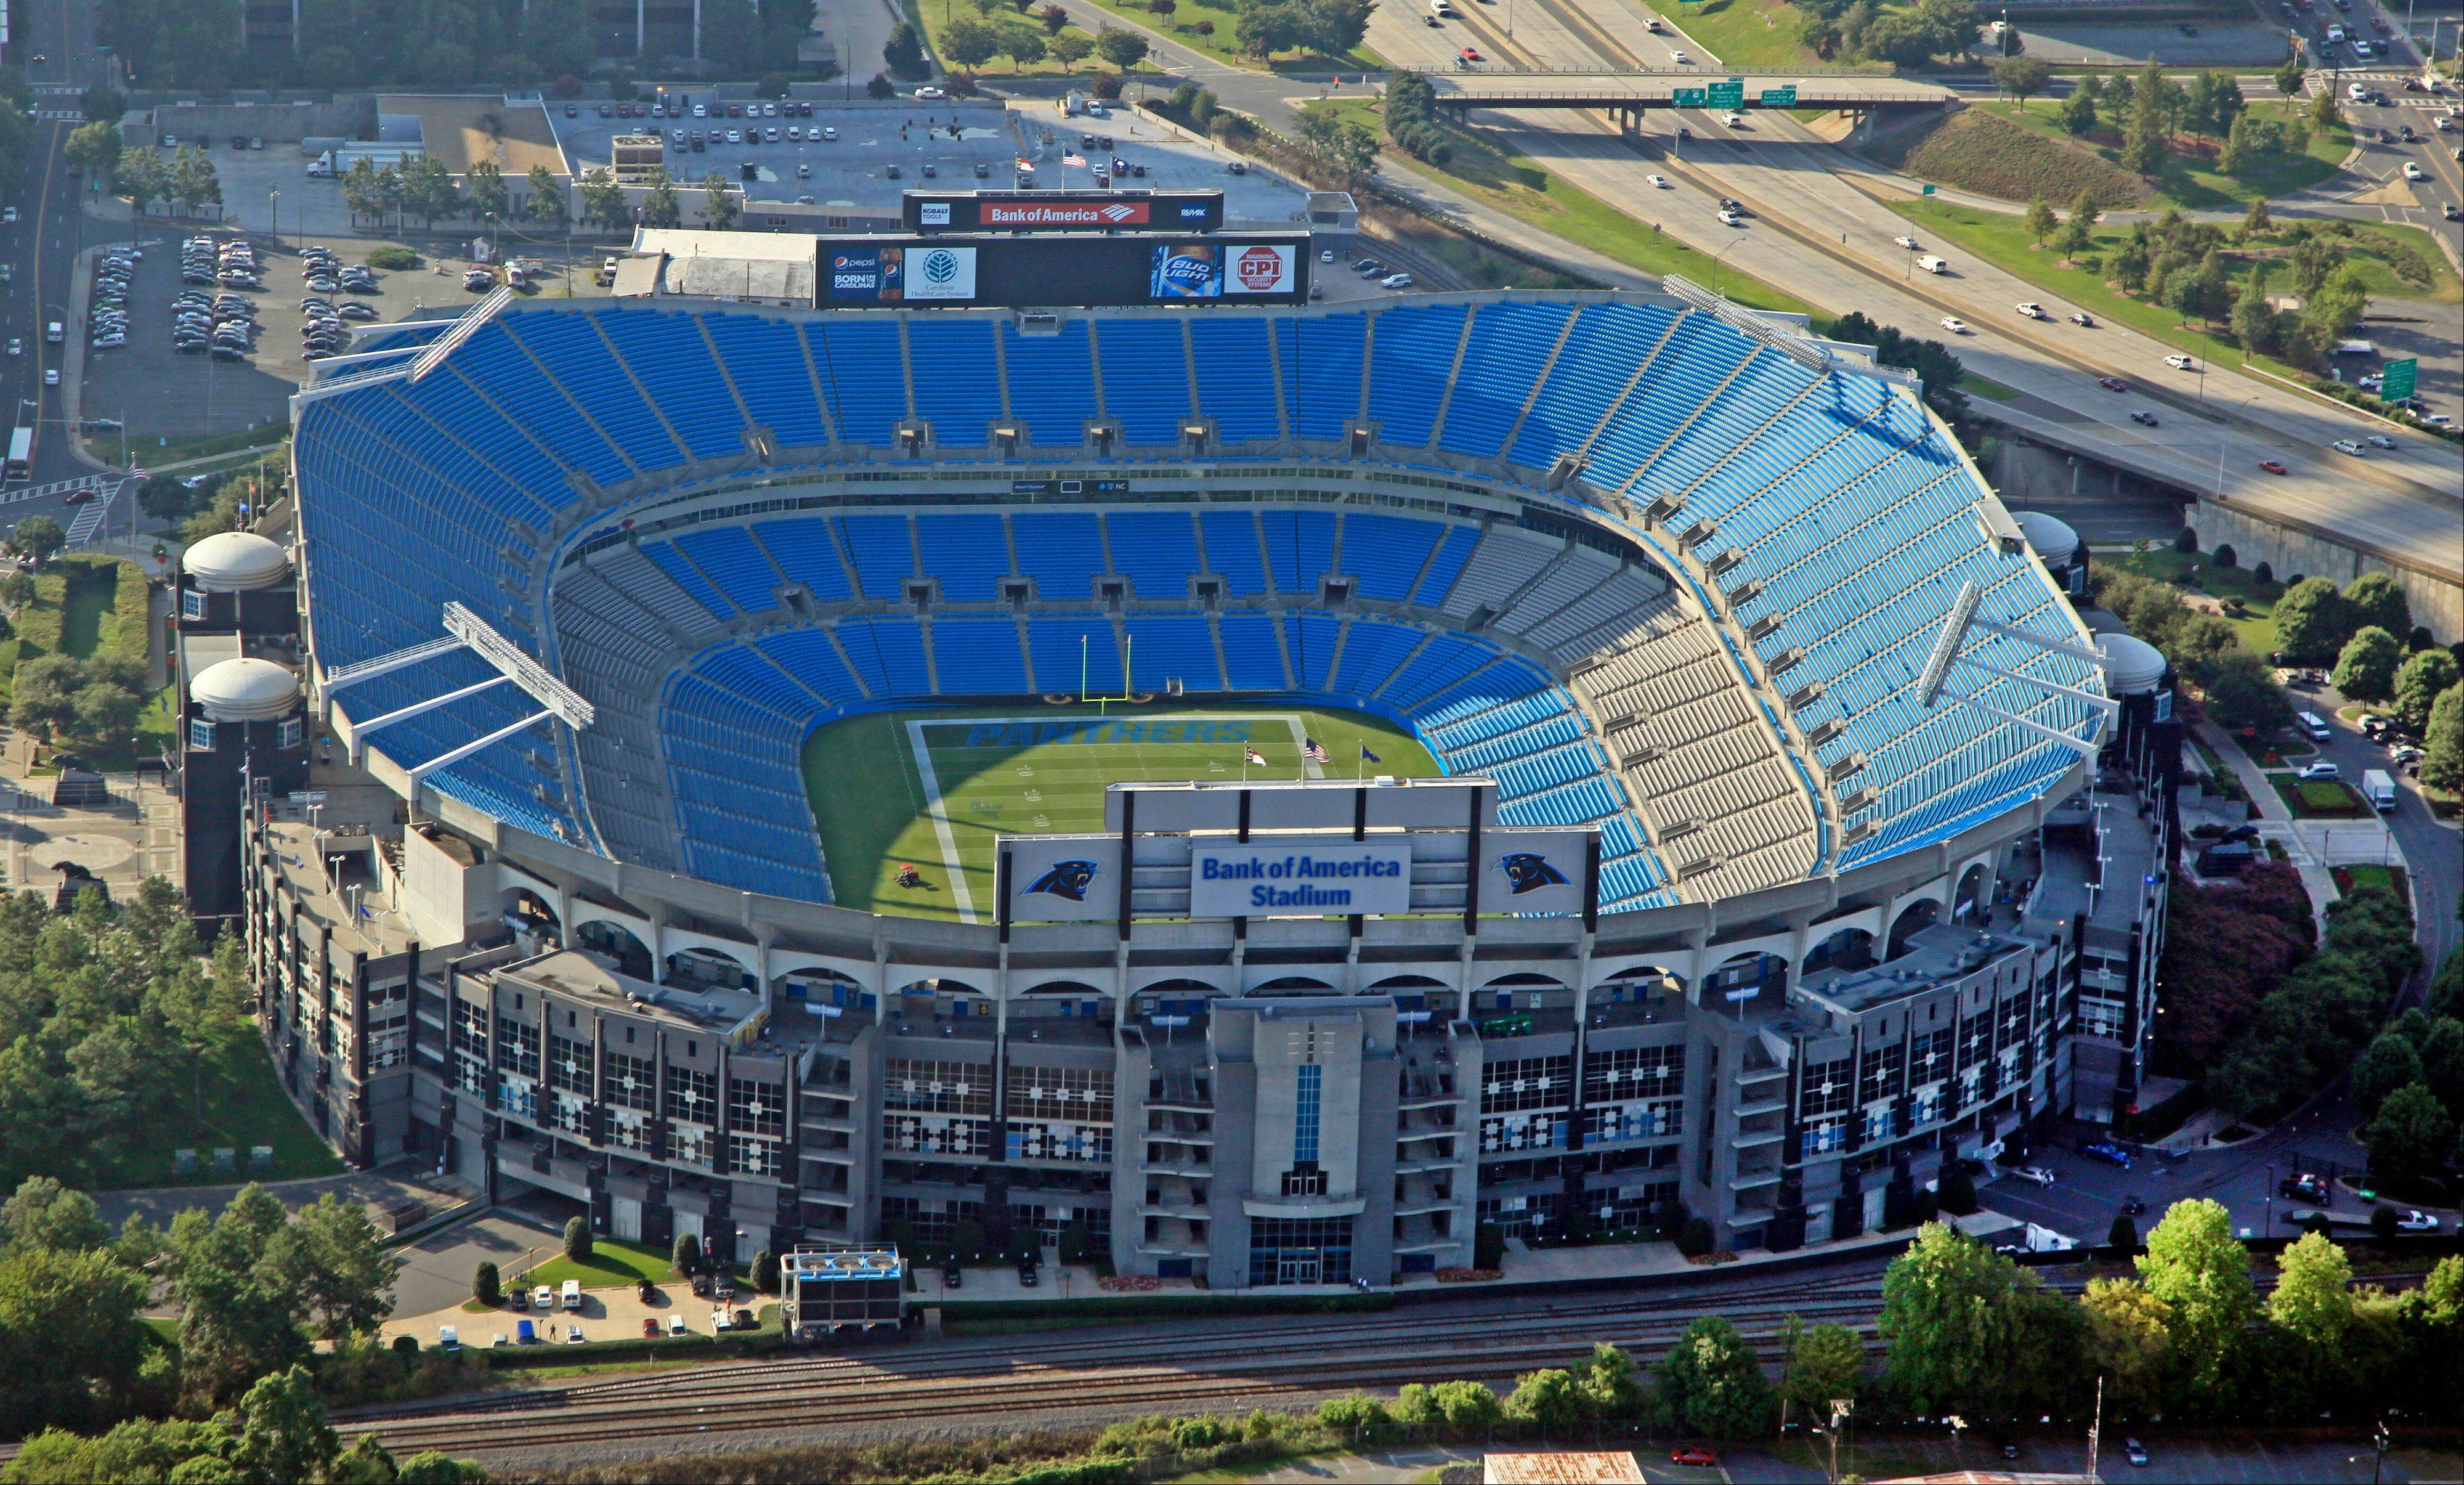 Bank of America Stadium is shown in downtown Charlotte, N.C., Thursday, Aug. 16, 2012. The stadium is one of the sites of the Democratic National Convention. The convention starts on Sept. 3, 2012.